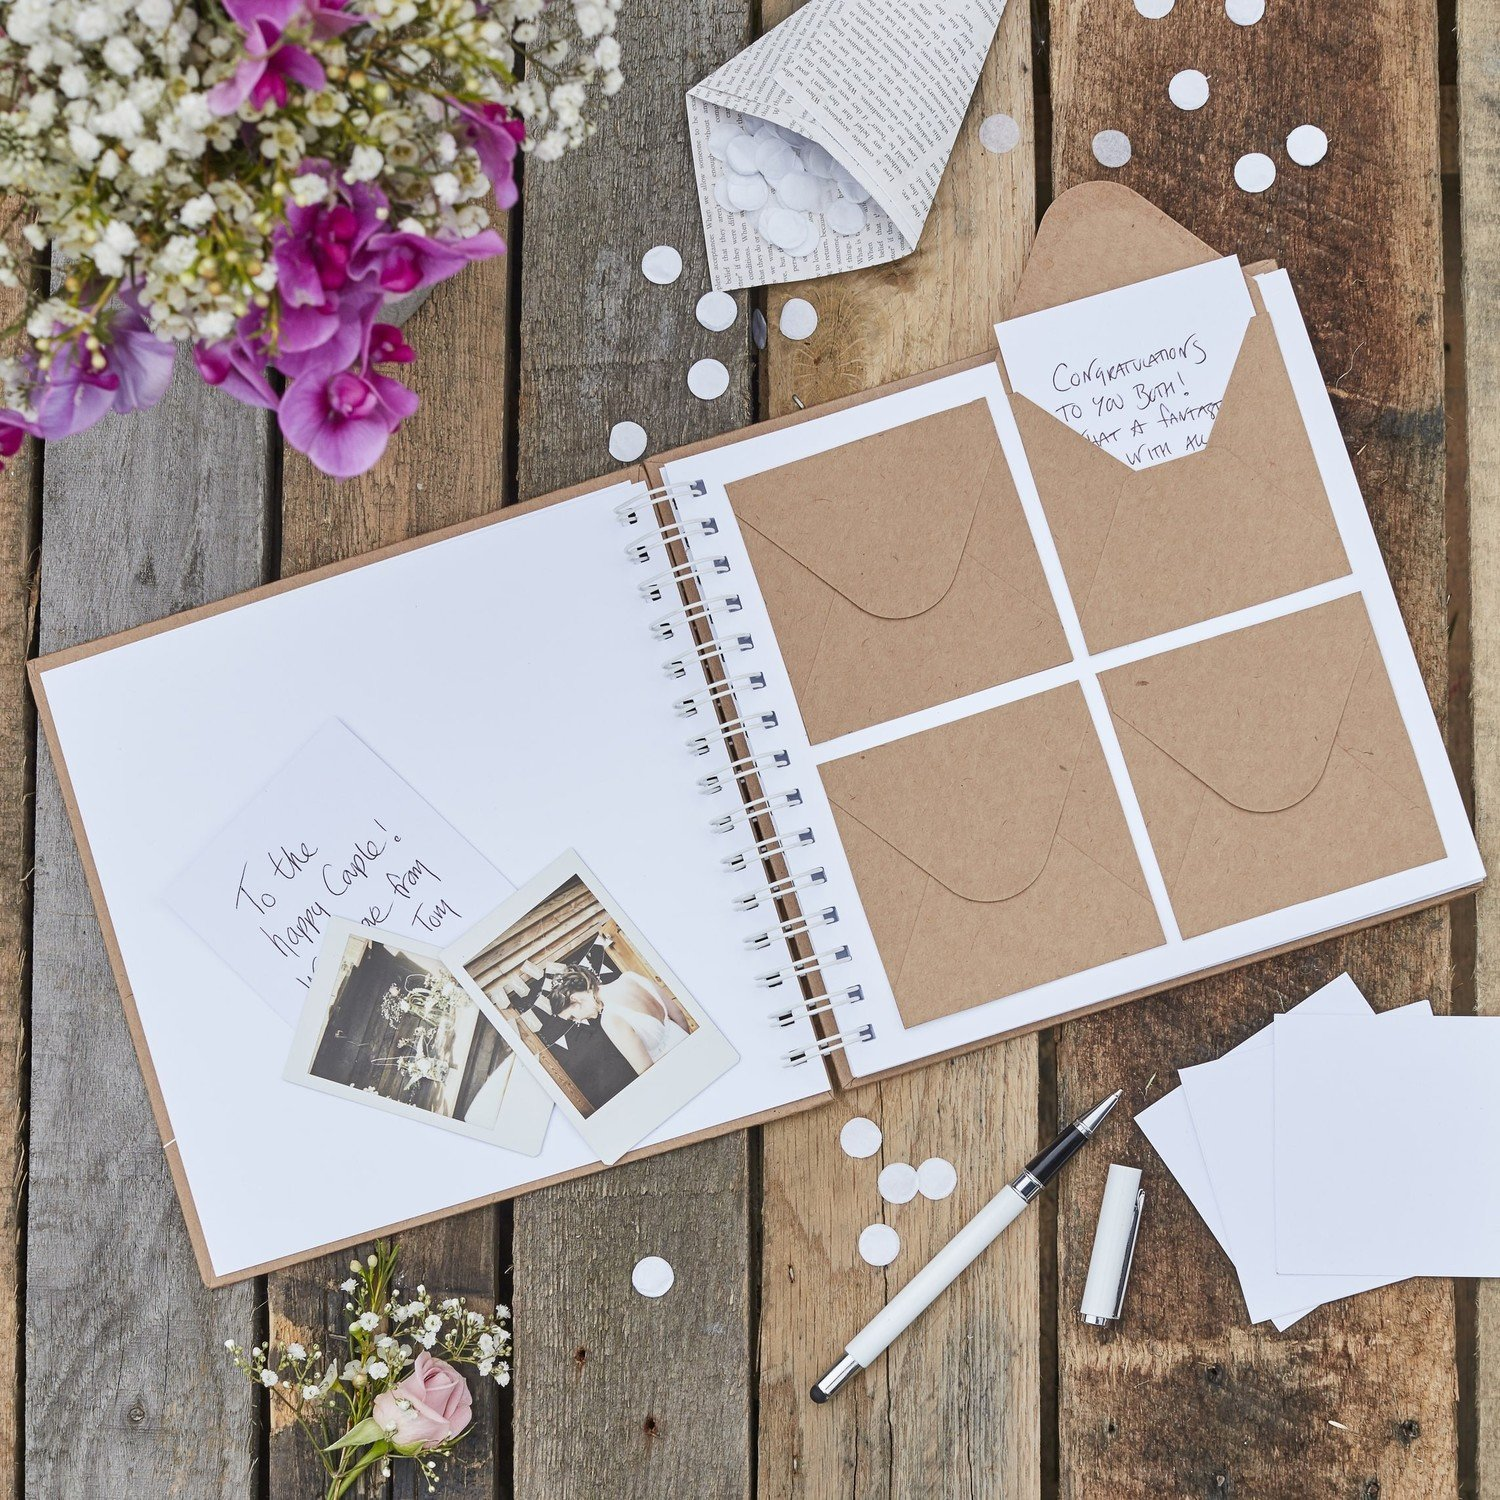 13 Gorgeous Wedding Guest Books You Can Pick Up Now! images 11